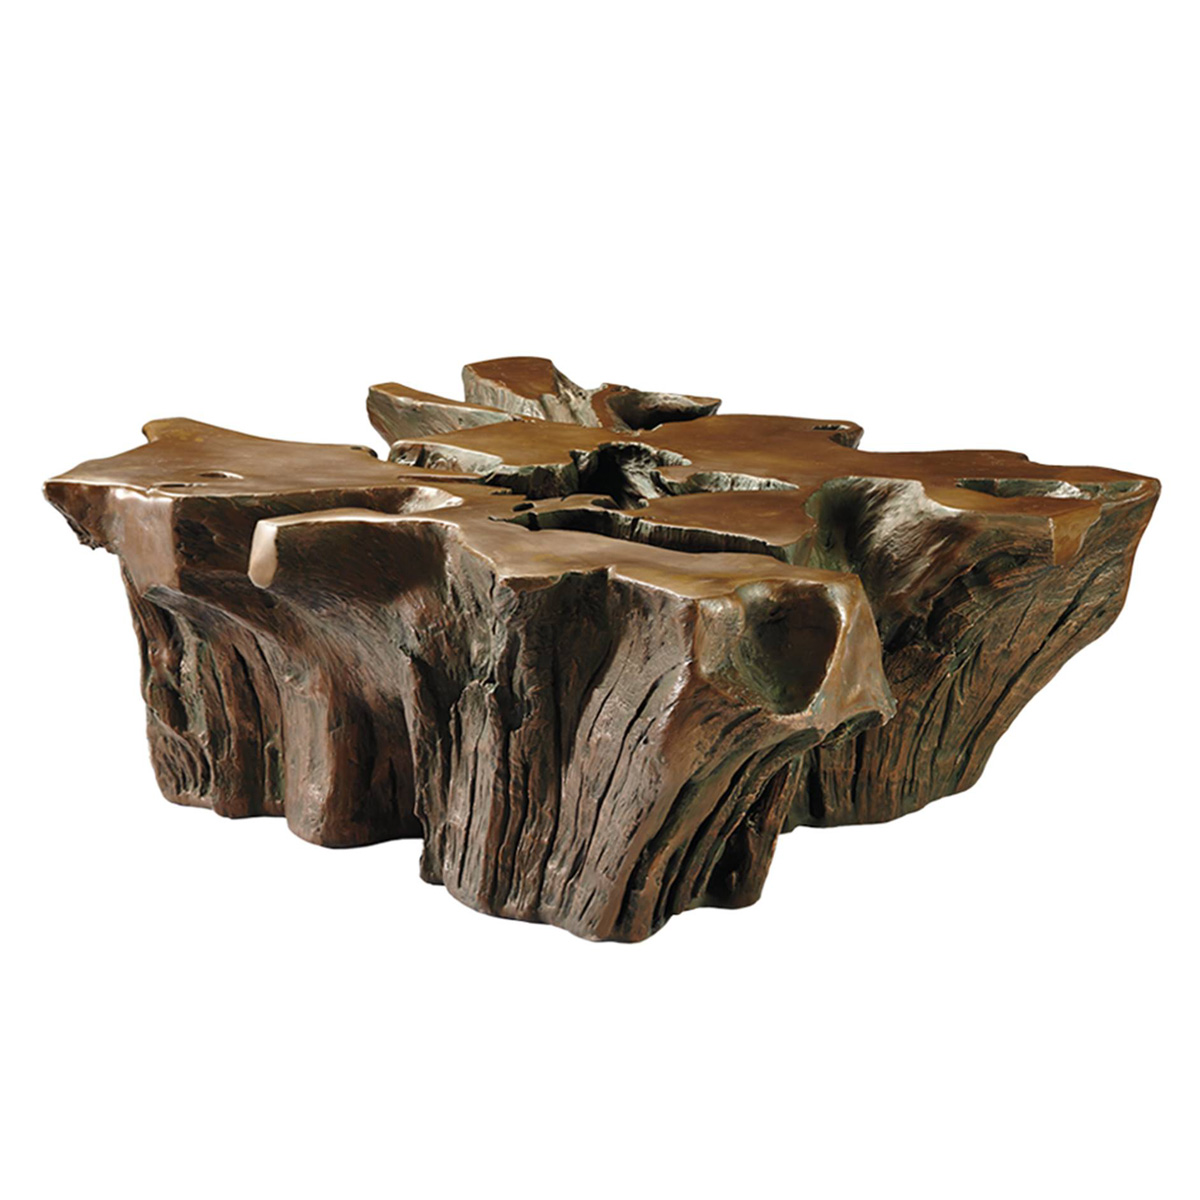 White Tree Stump Coffee Table: Root Coffee Table